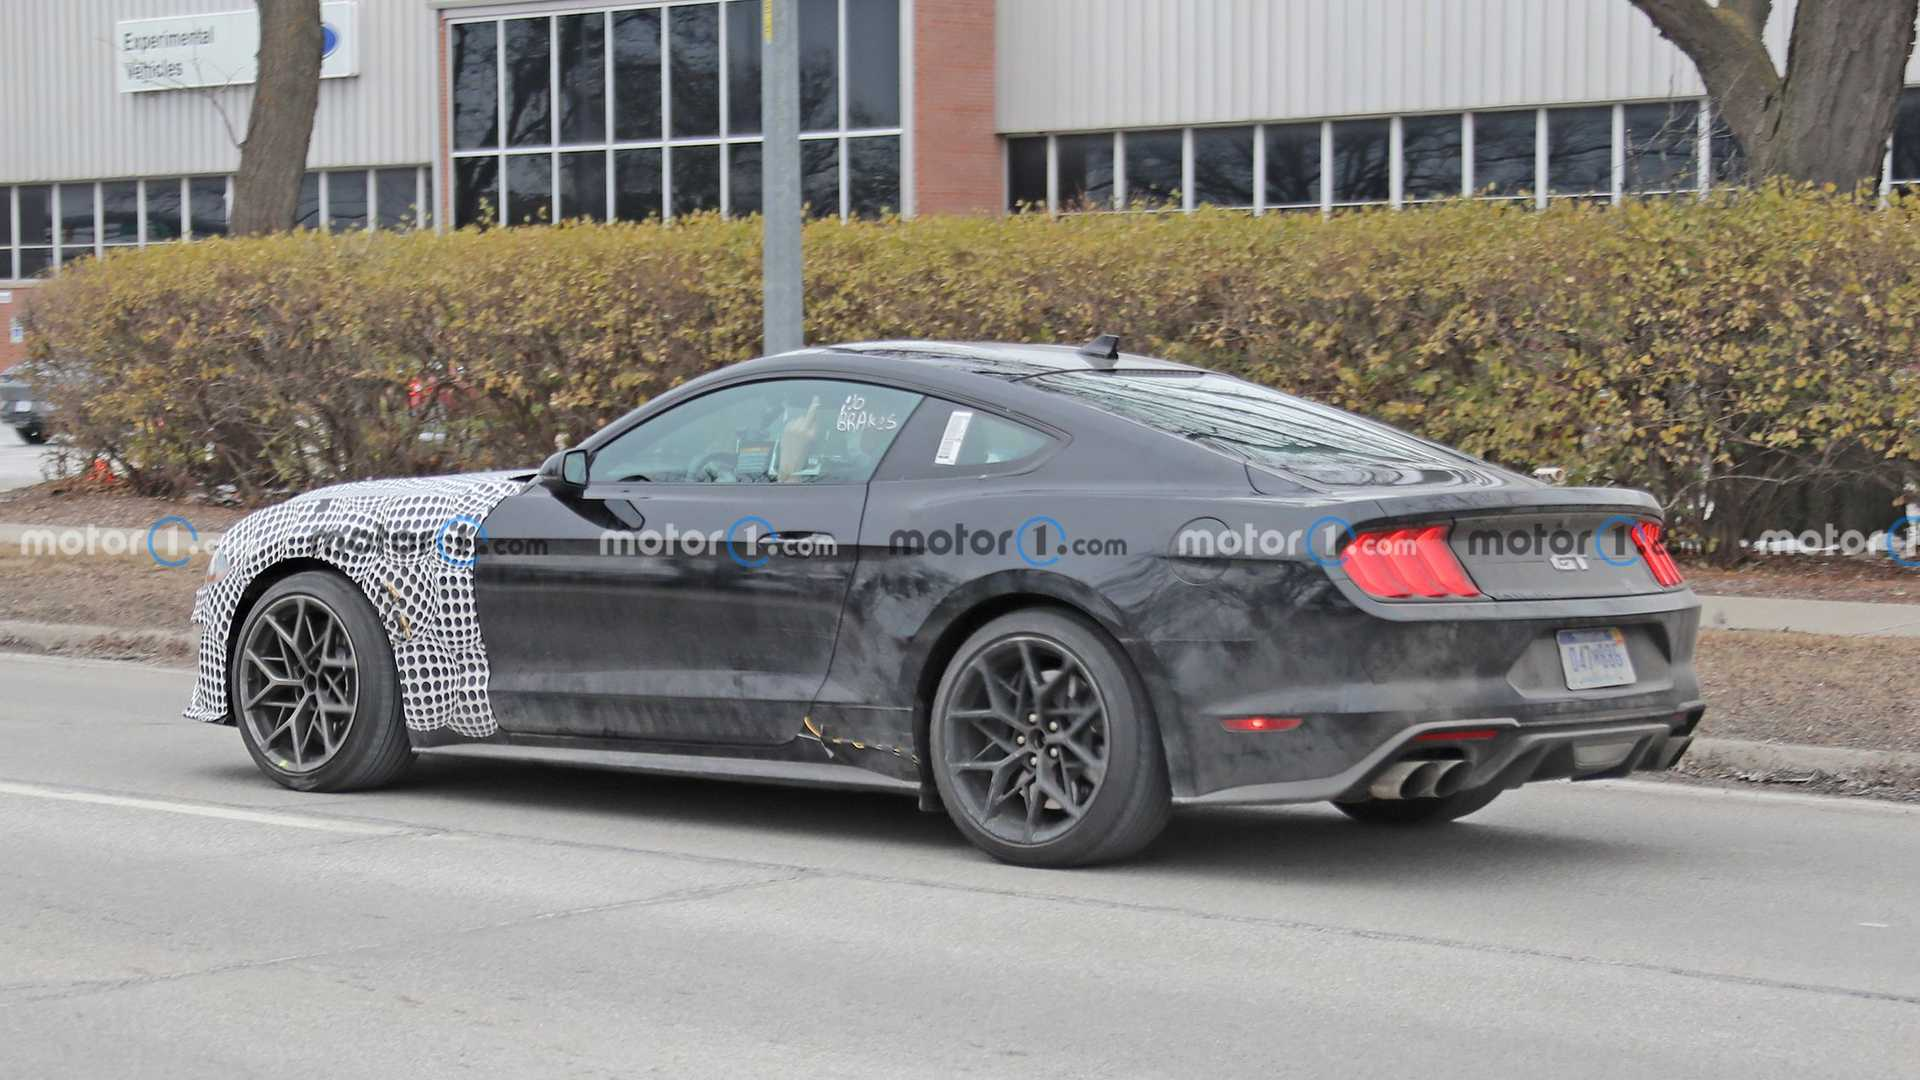 Ford Mustang AWD Test Mule Side Spy Photo